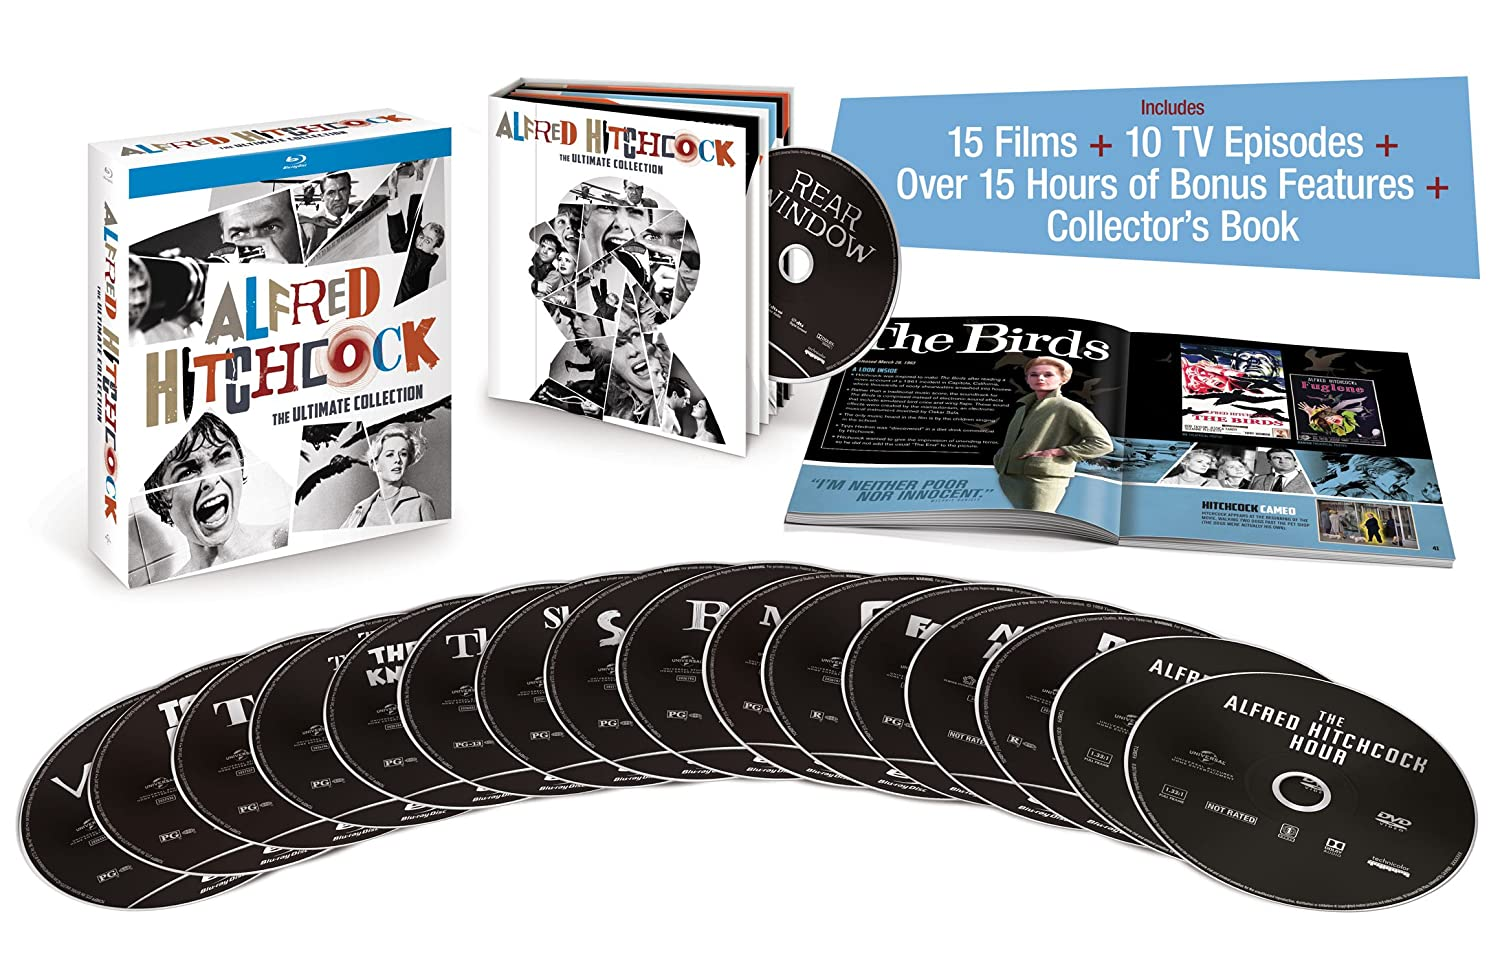 Save 40% on Alfred Hitchcock:.